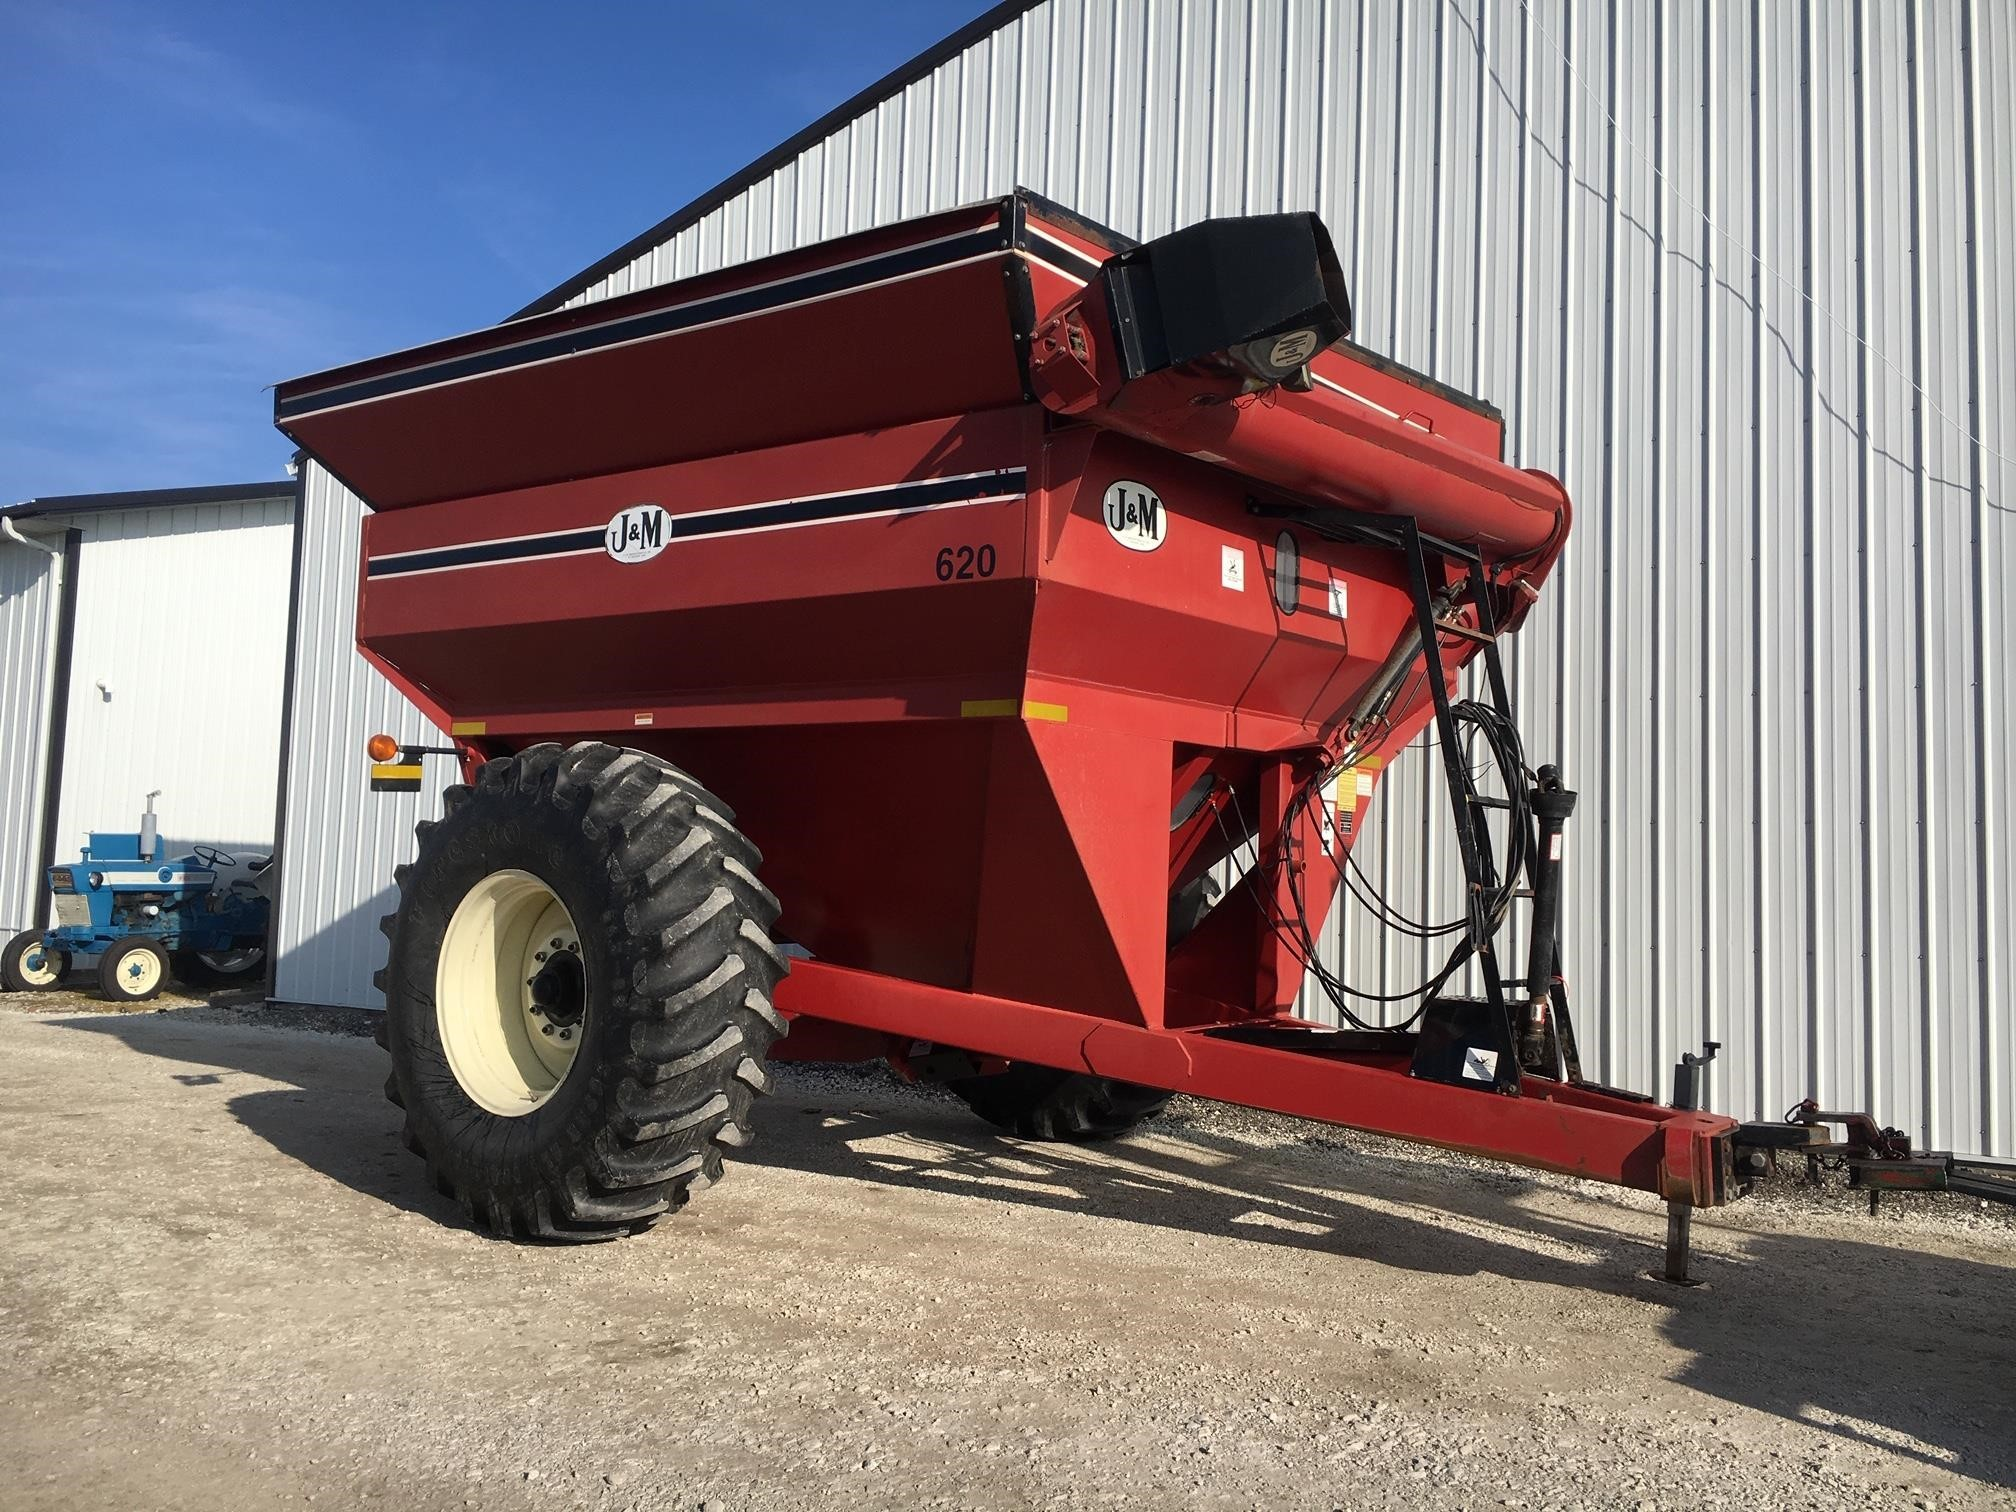 J&M 620-14 Grain Cart